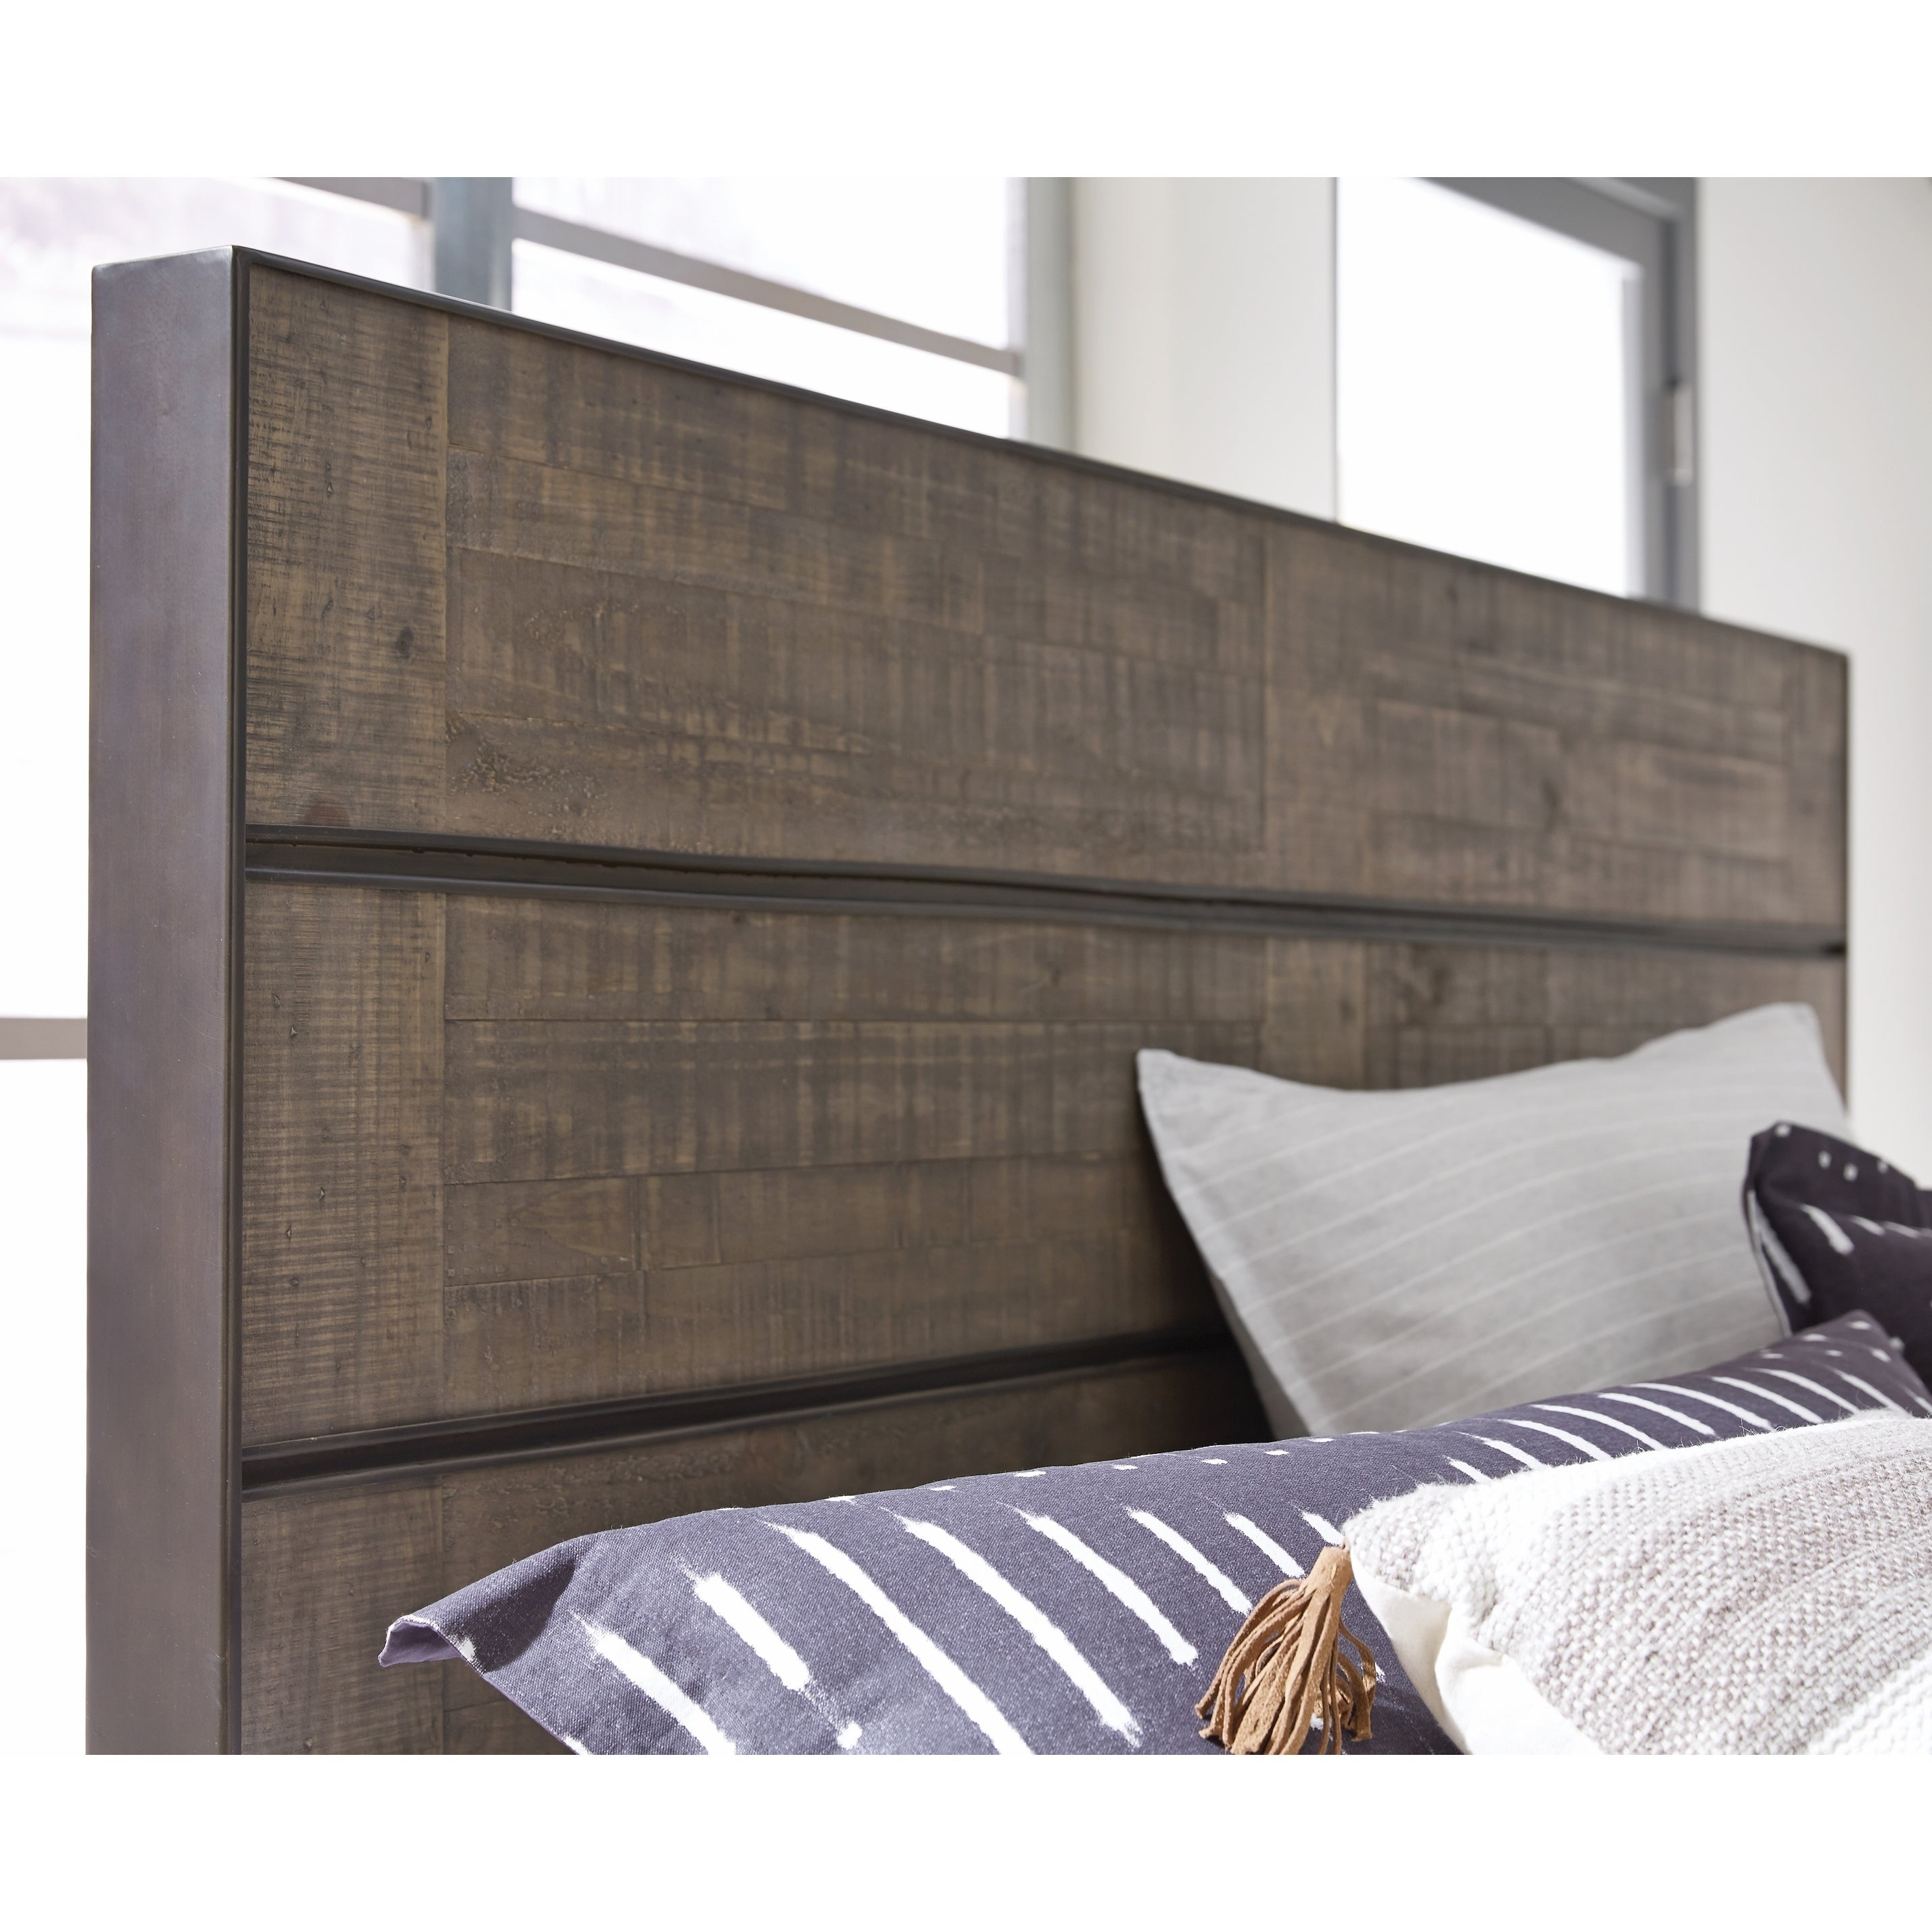 Shop granada hills queen metal and wood panel bed headboard on sale free shipping today overstock com 22430521